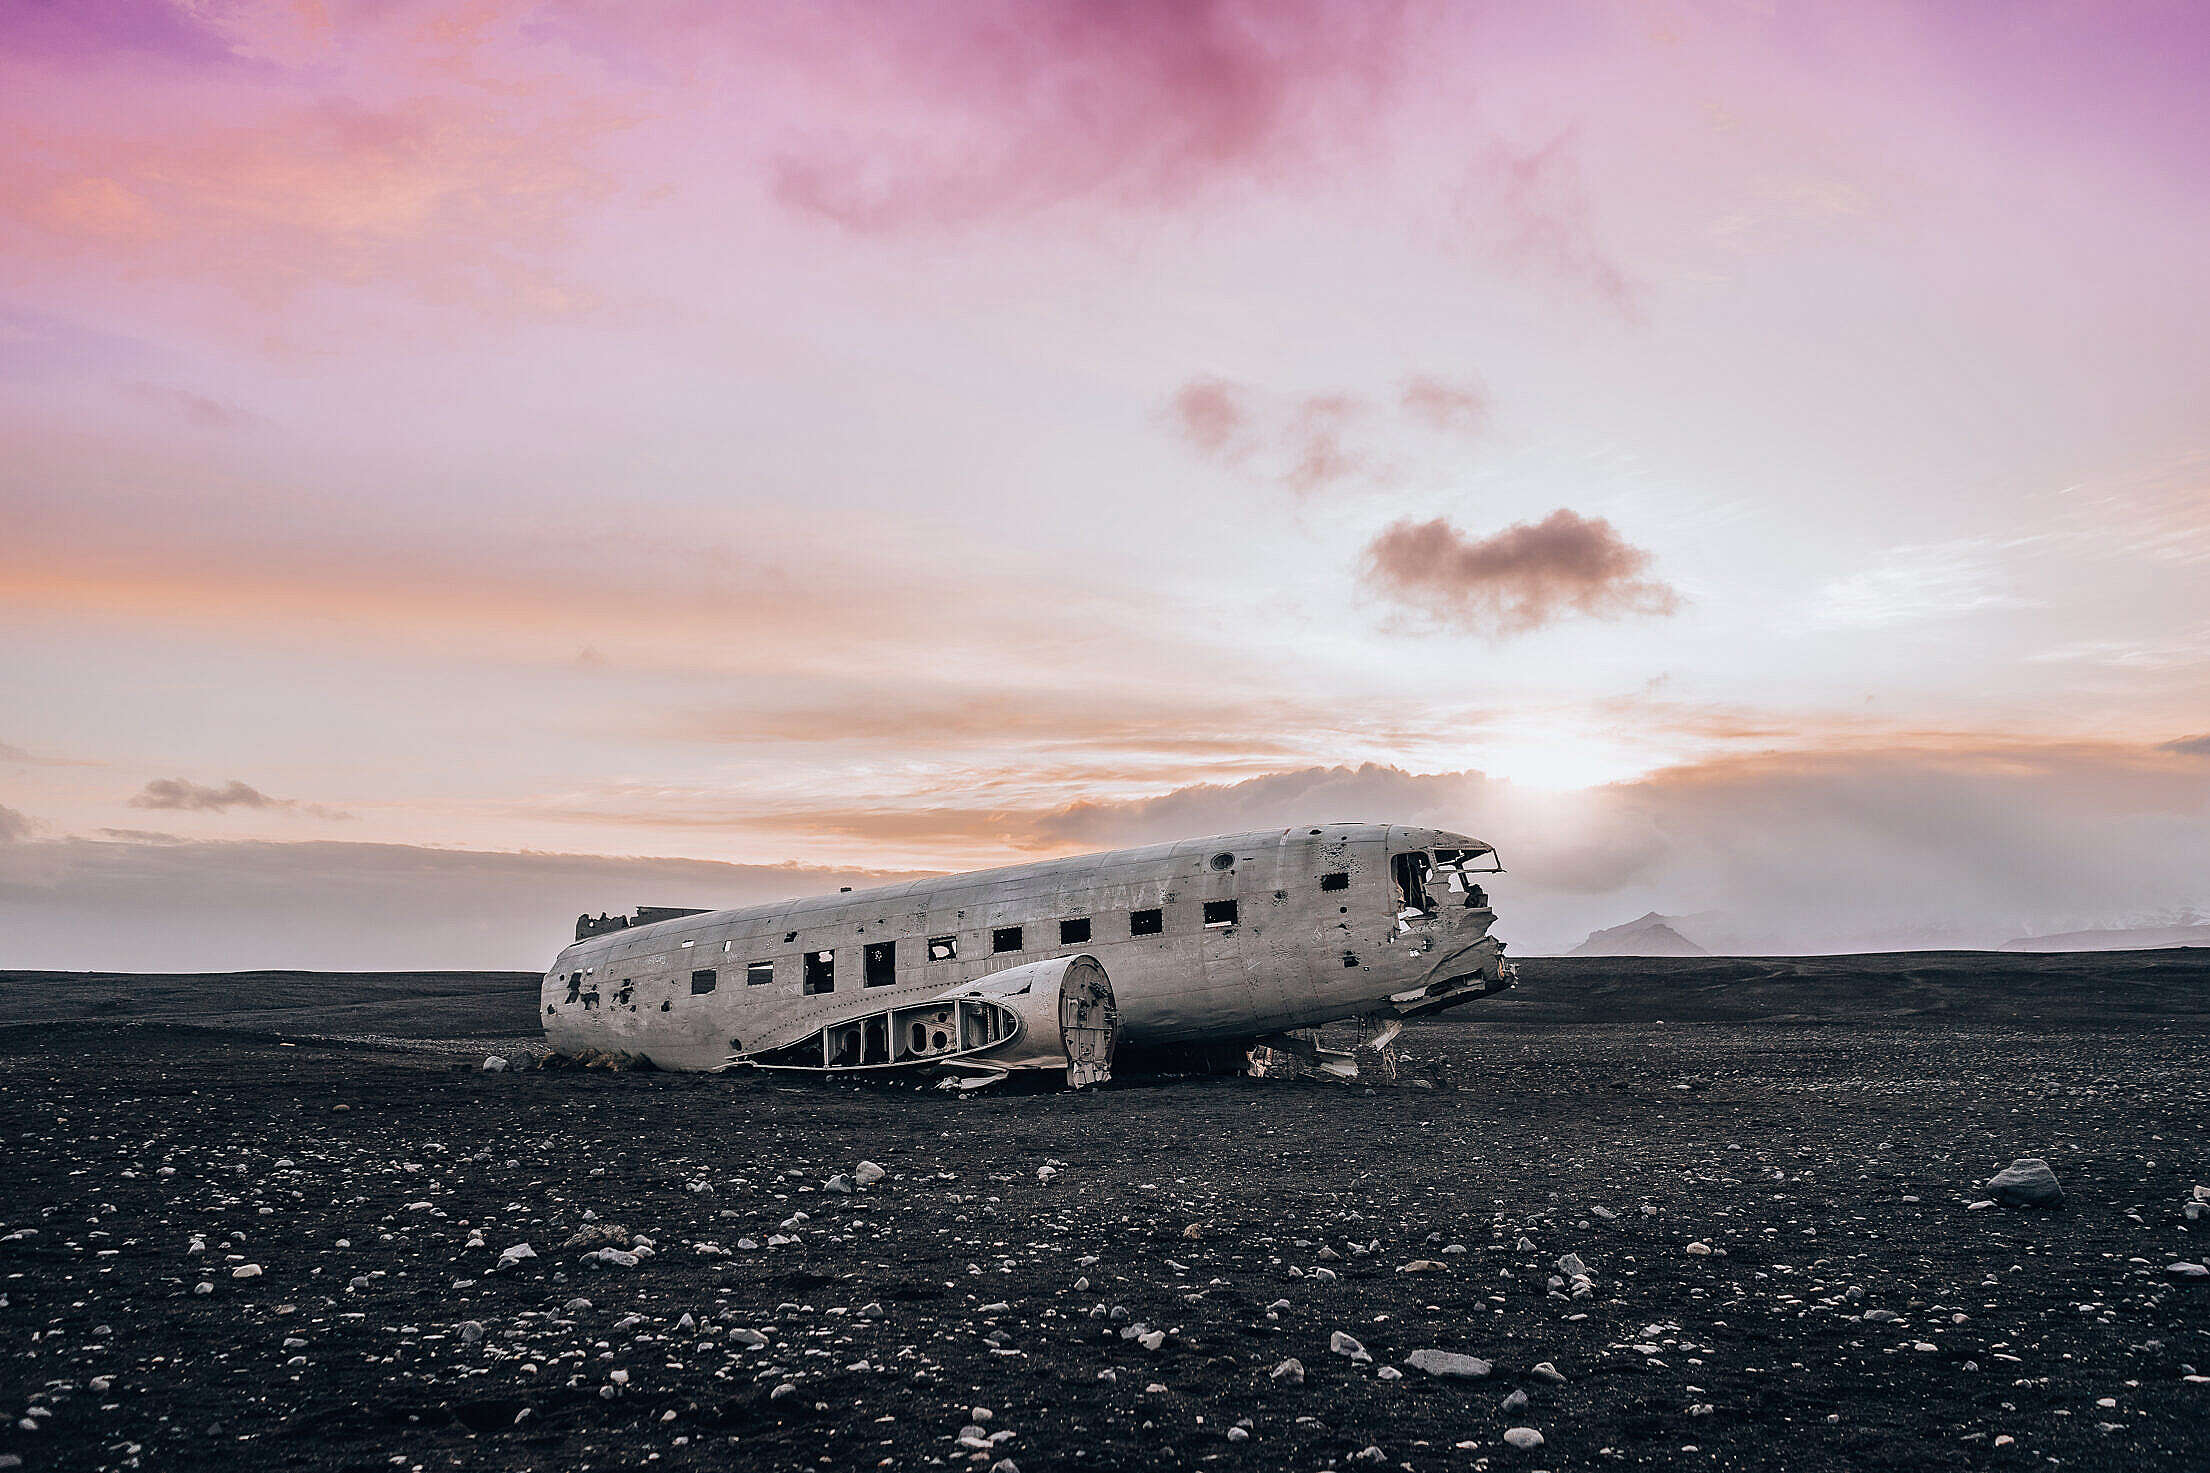 Famous Wrecked Plane in Iceland Free Stock Photo